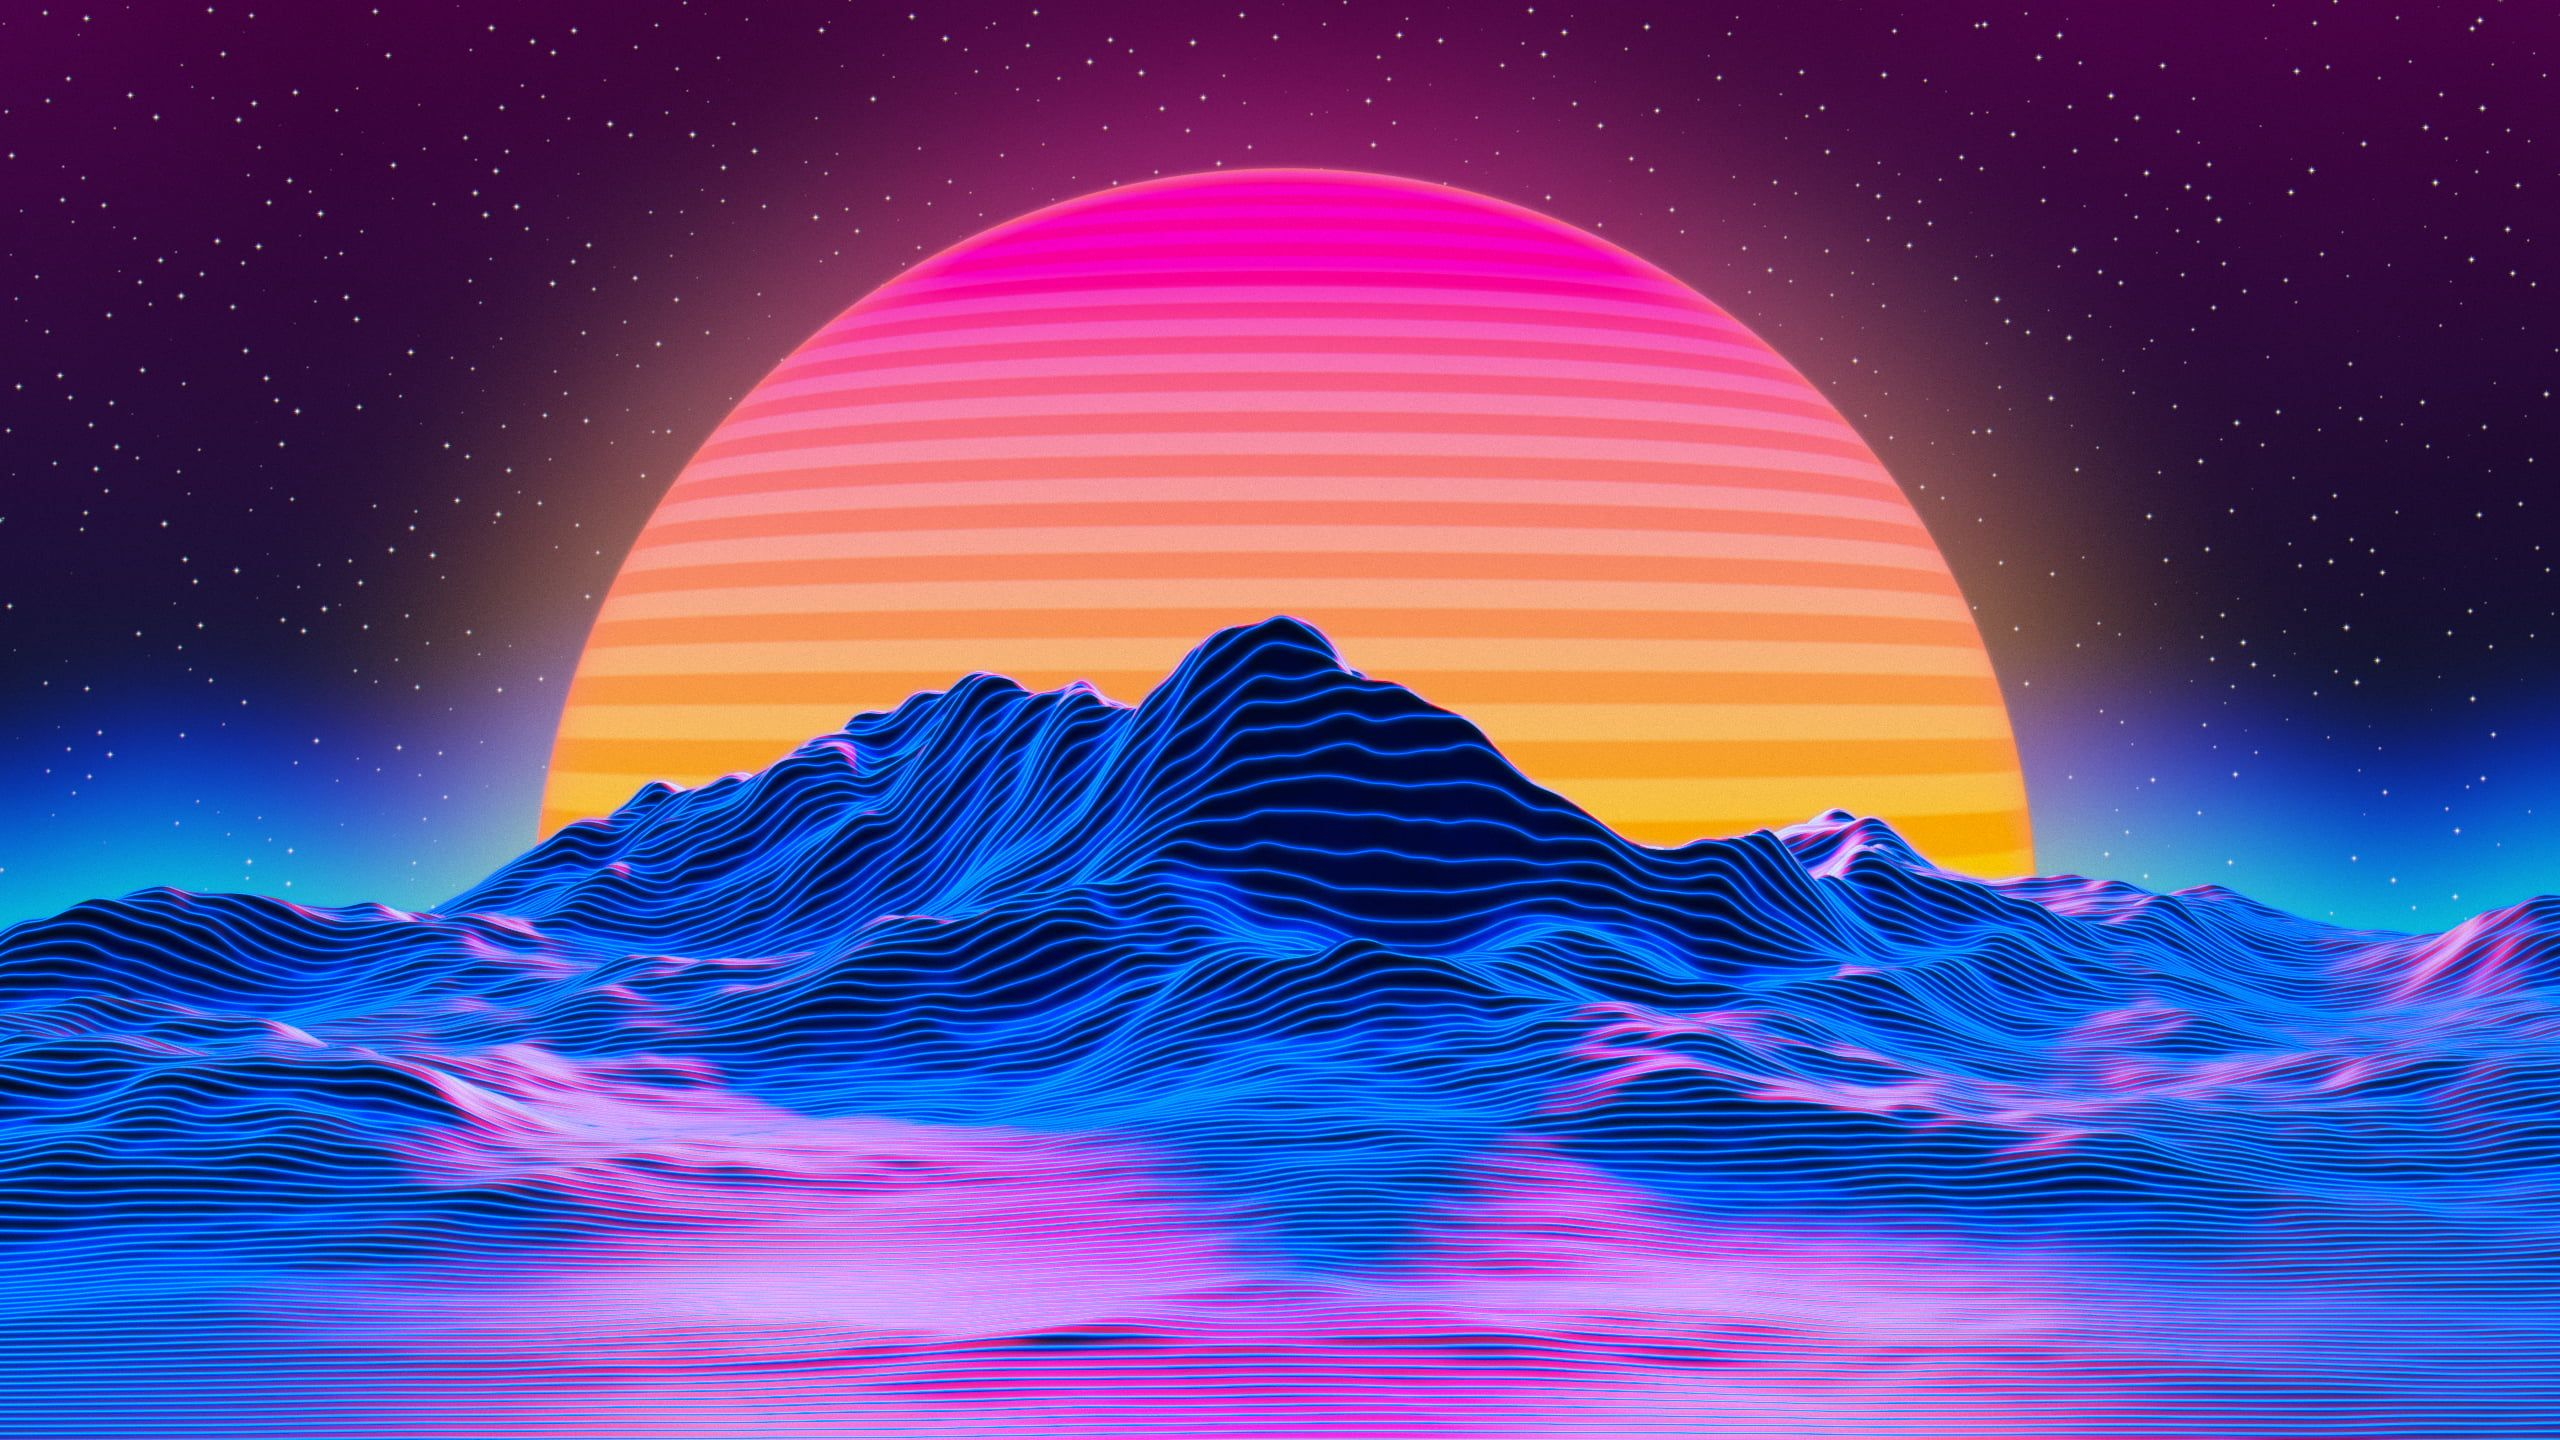 HD wallpaper: OutRun, vaporwave